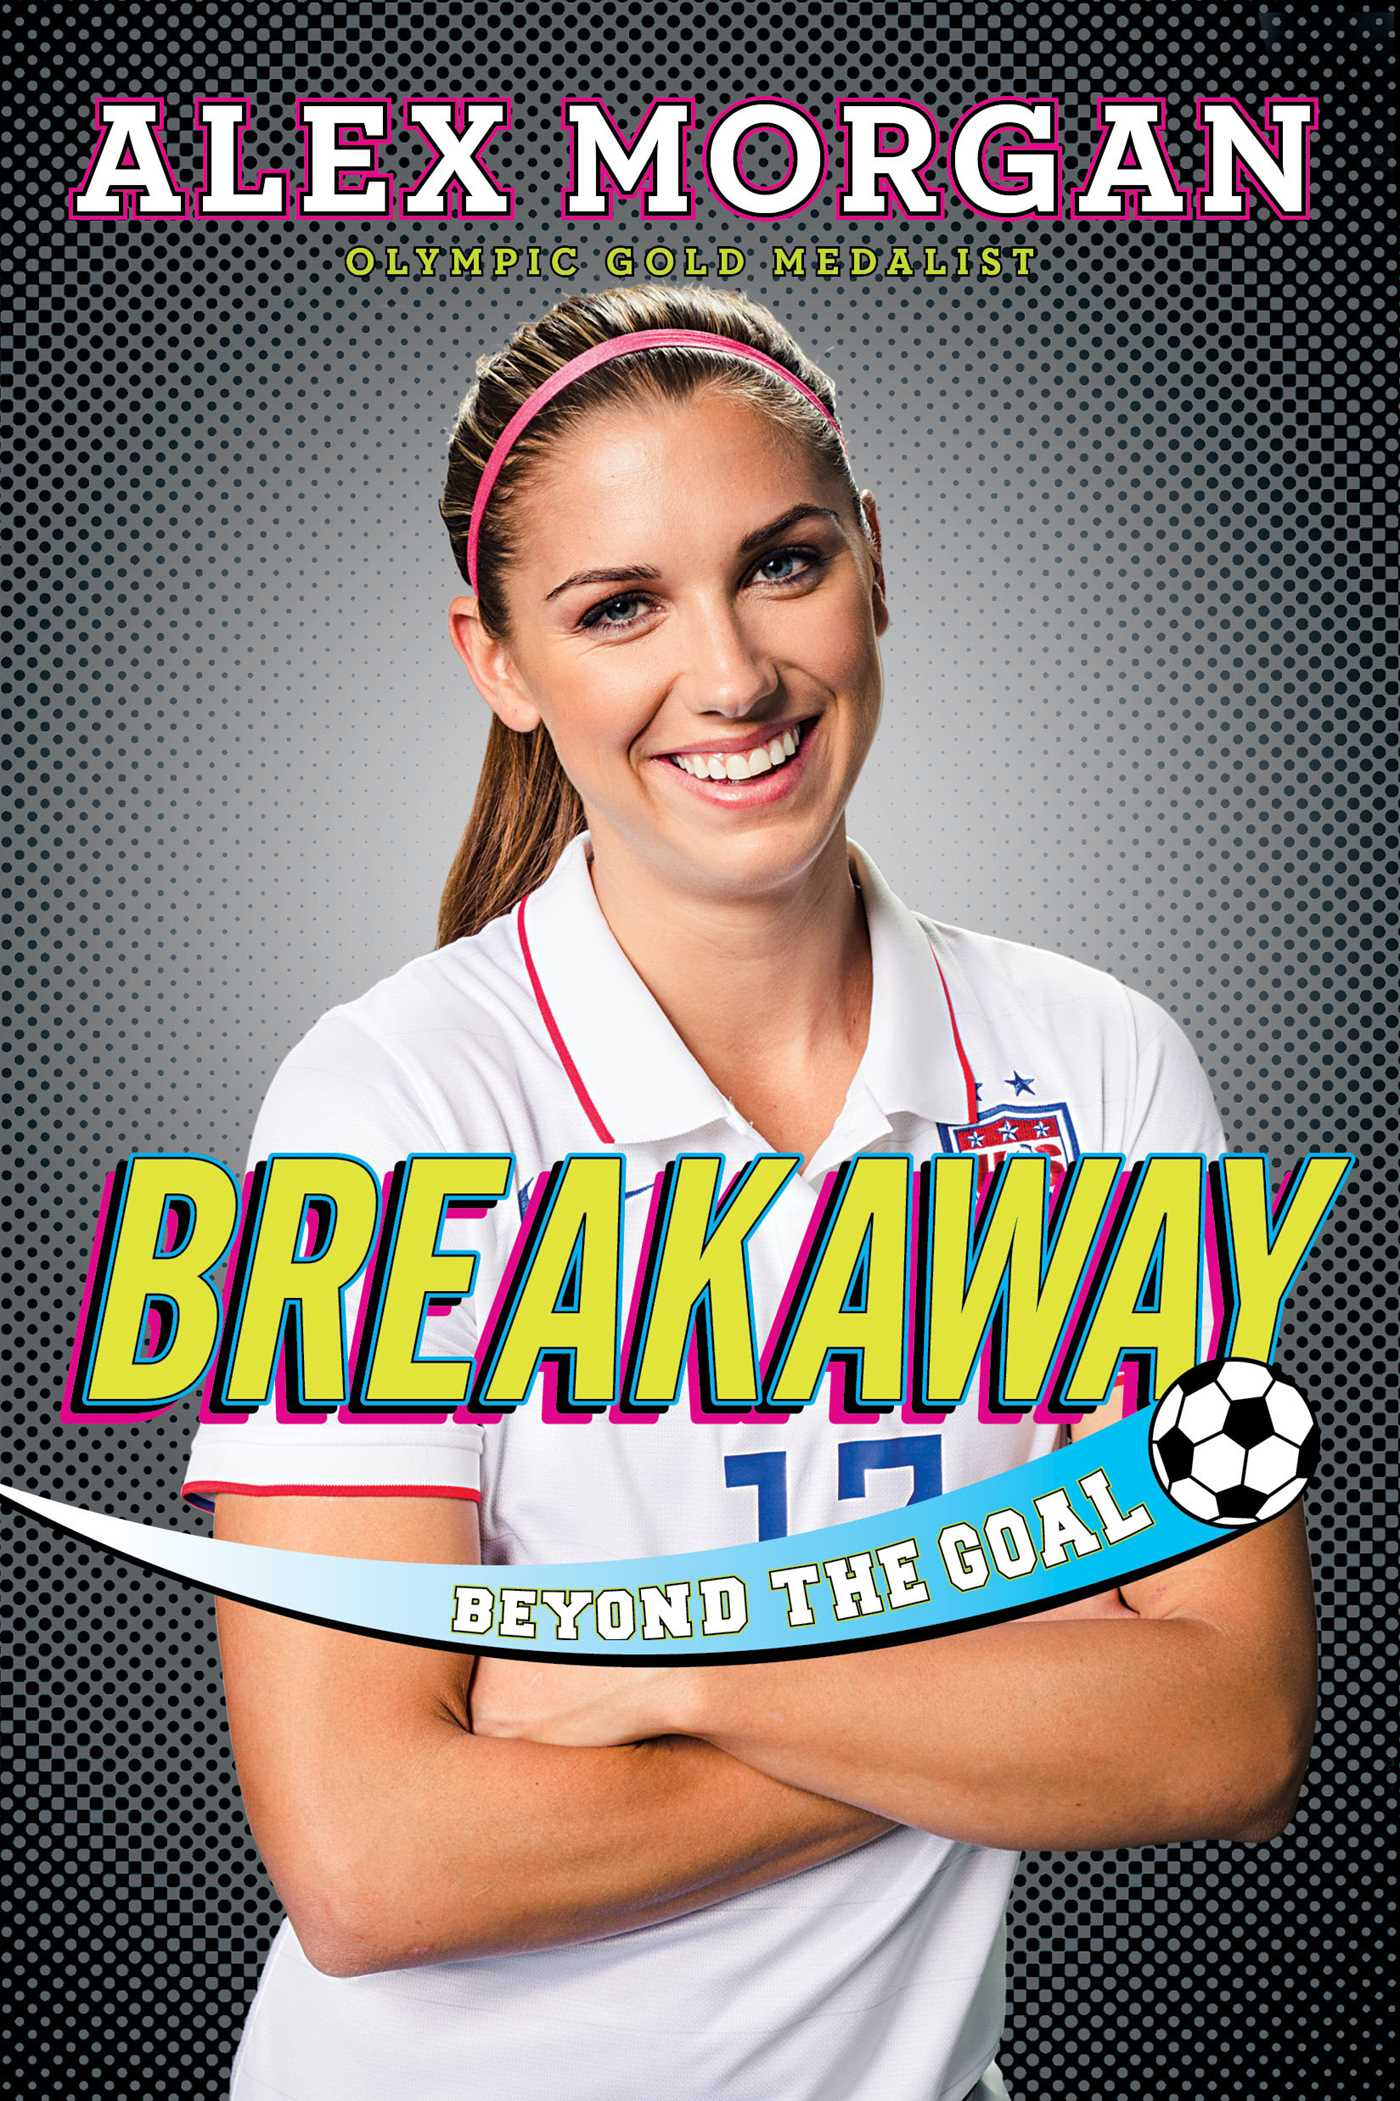 Image result for breakaway beyond the goal book cover